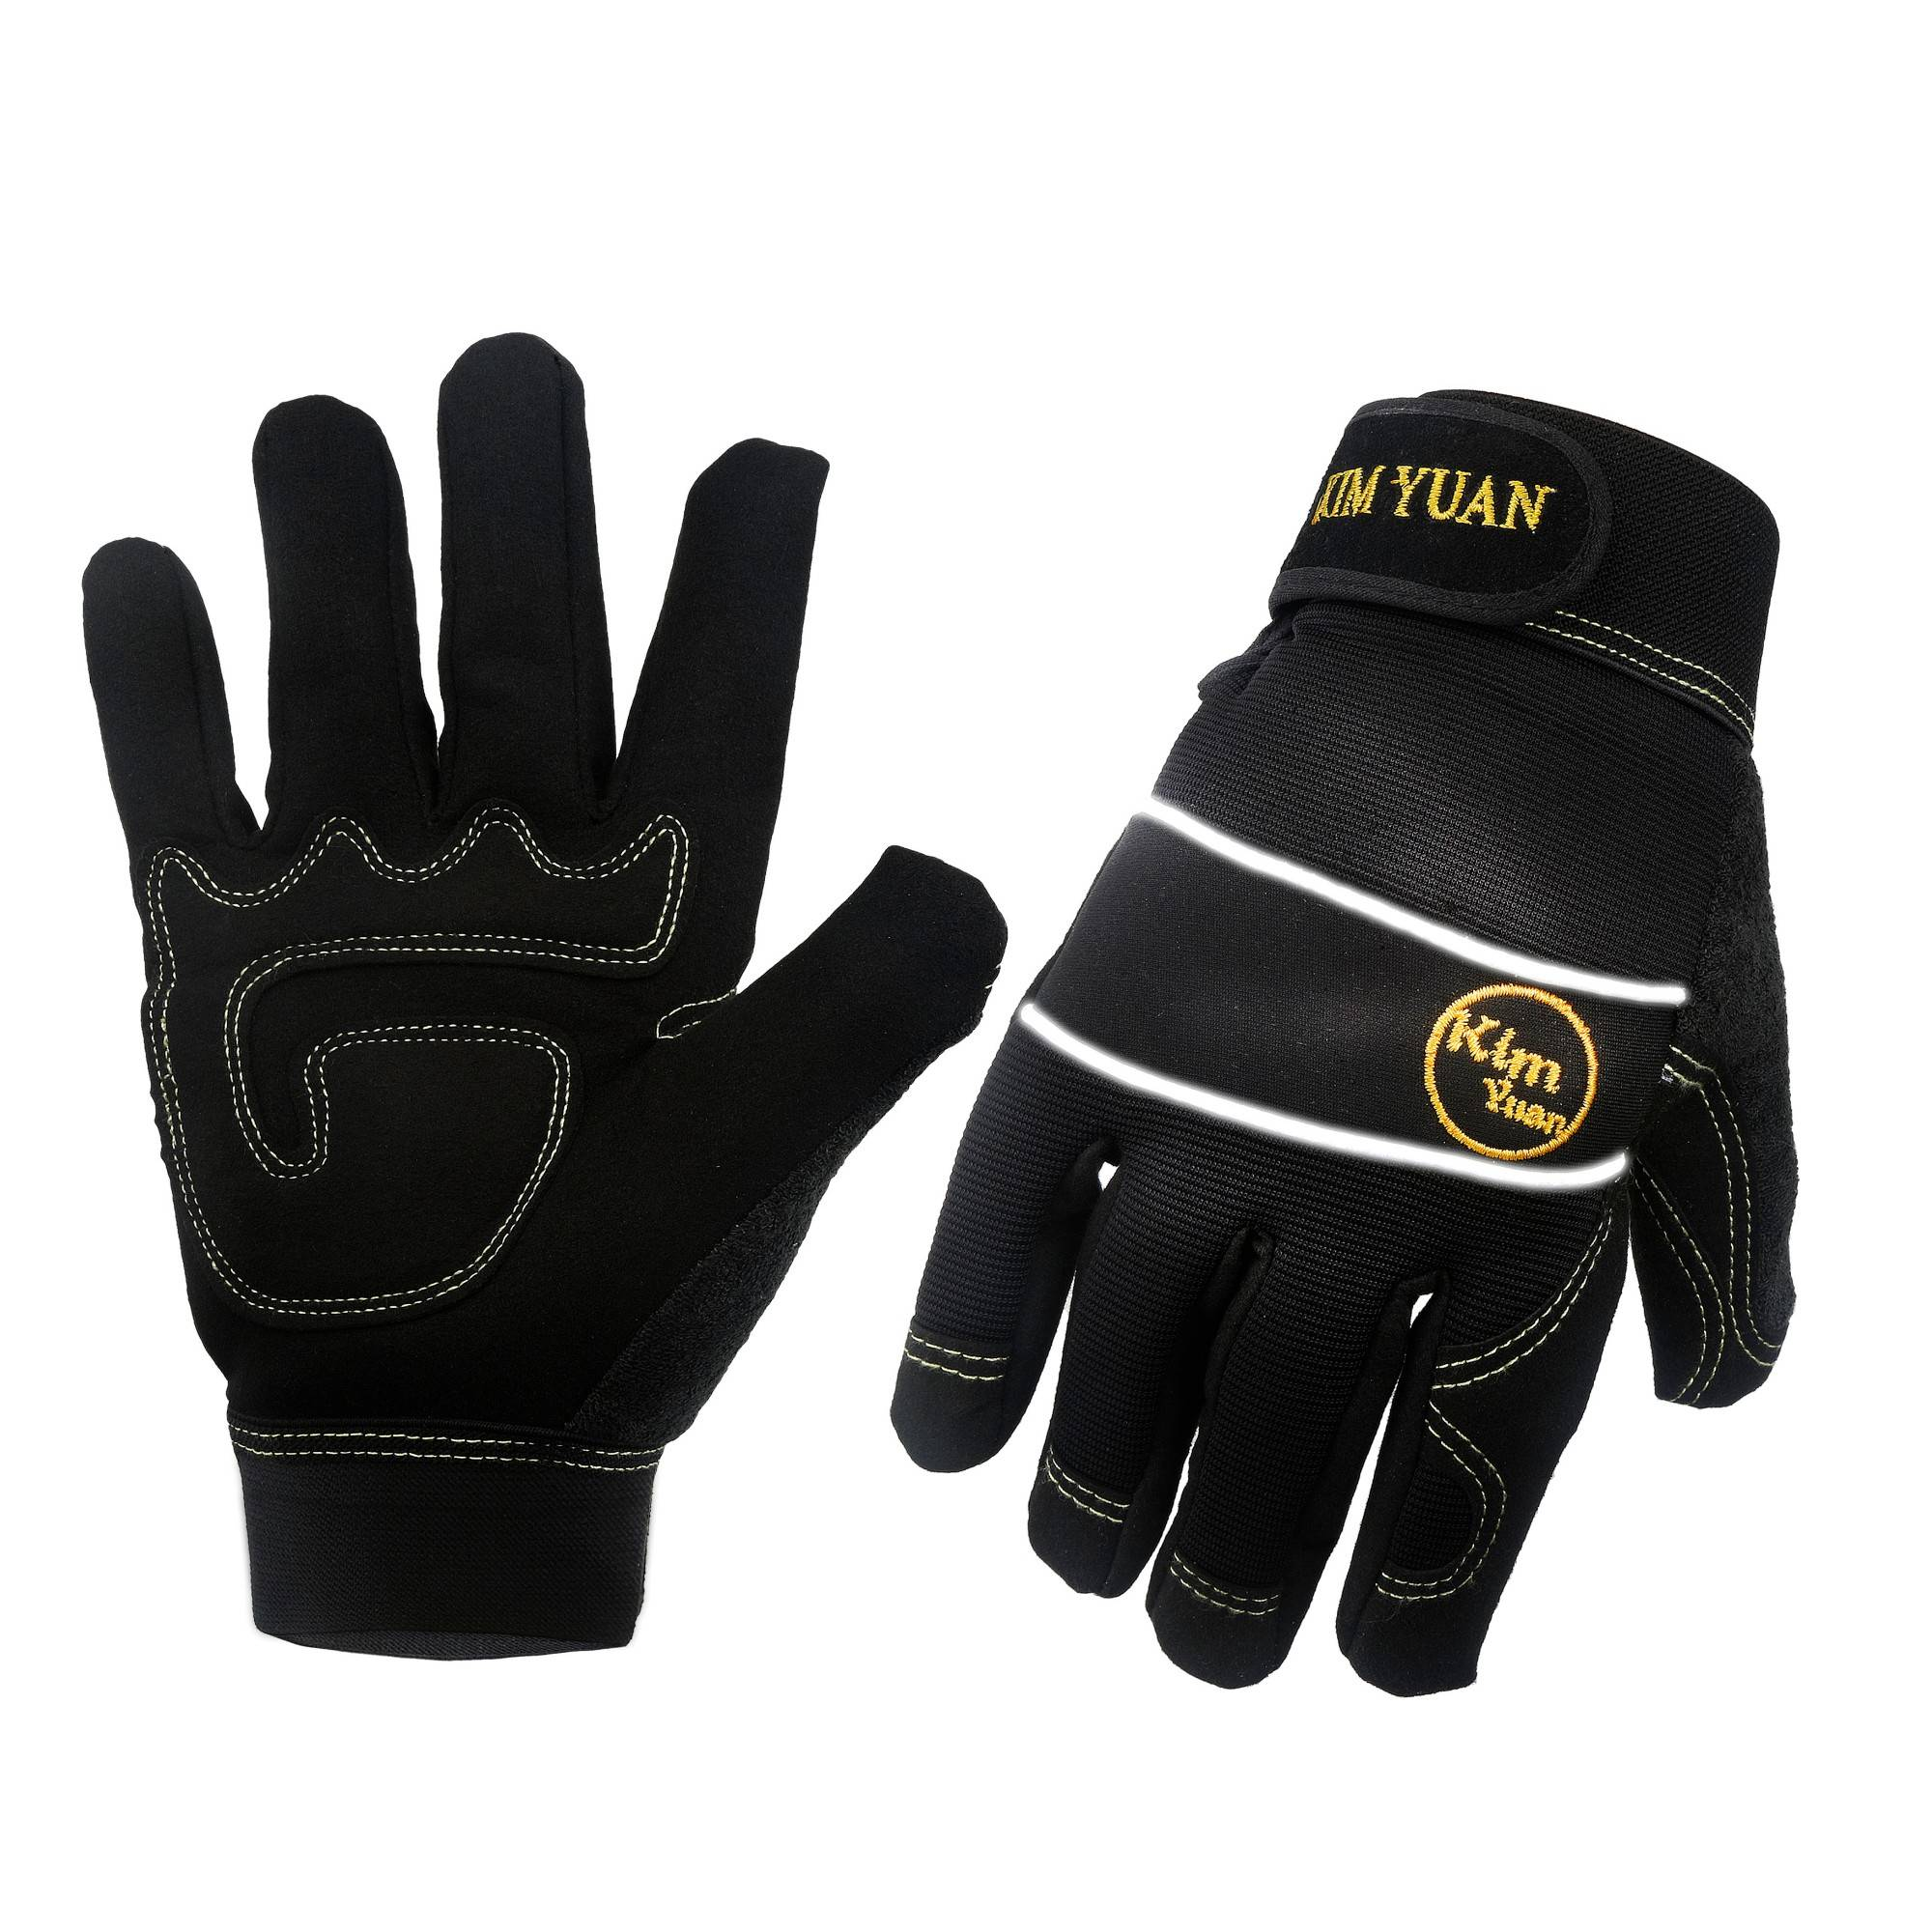 KIM YUAN Mechanic General Utility Breathable Work Gloves Touch Screen, Skid/Abrasion Resistant, Pefect for Warehouse, Construction, Outdoor, Men & Women